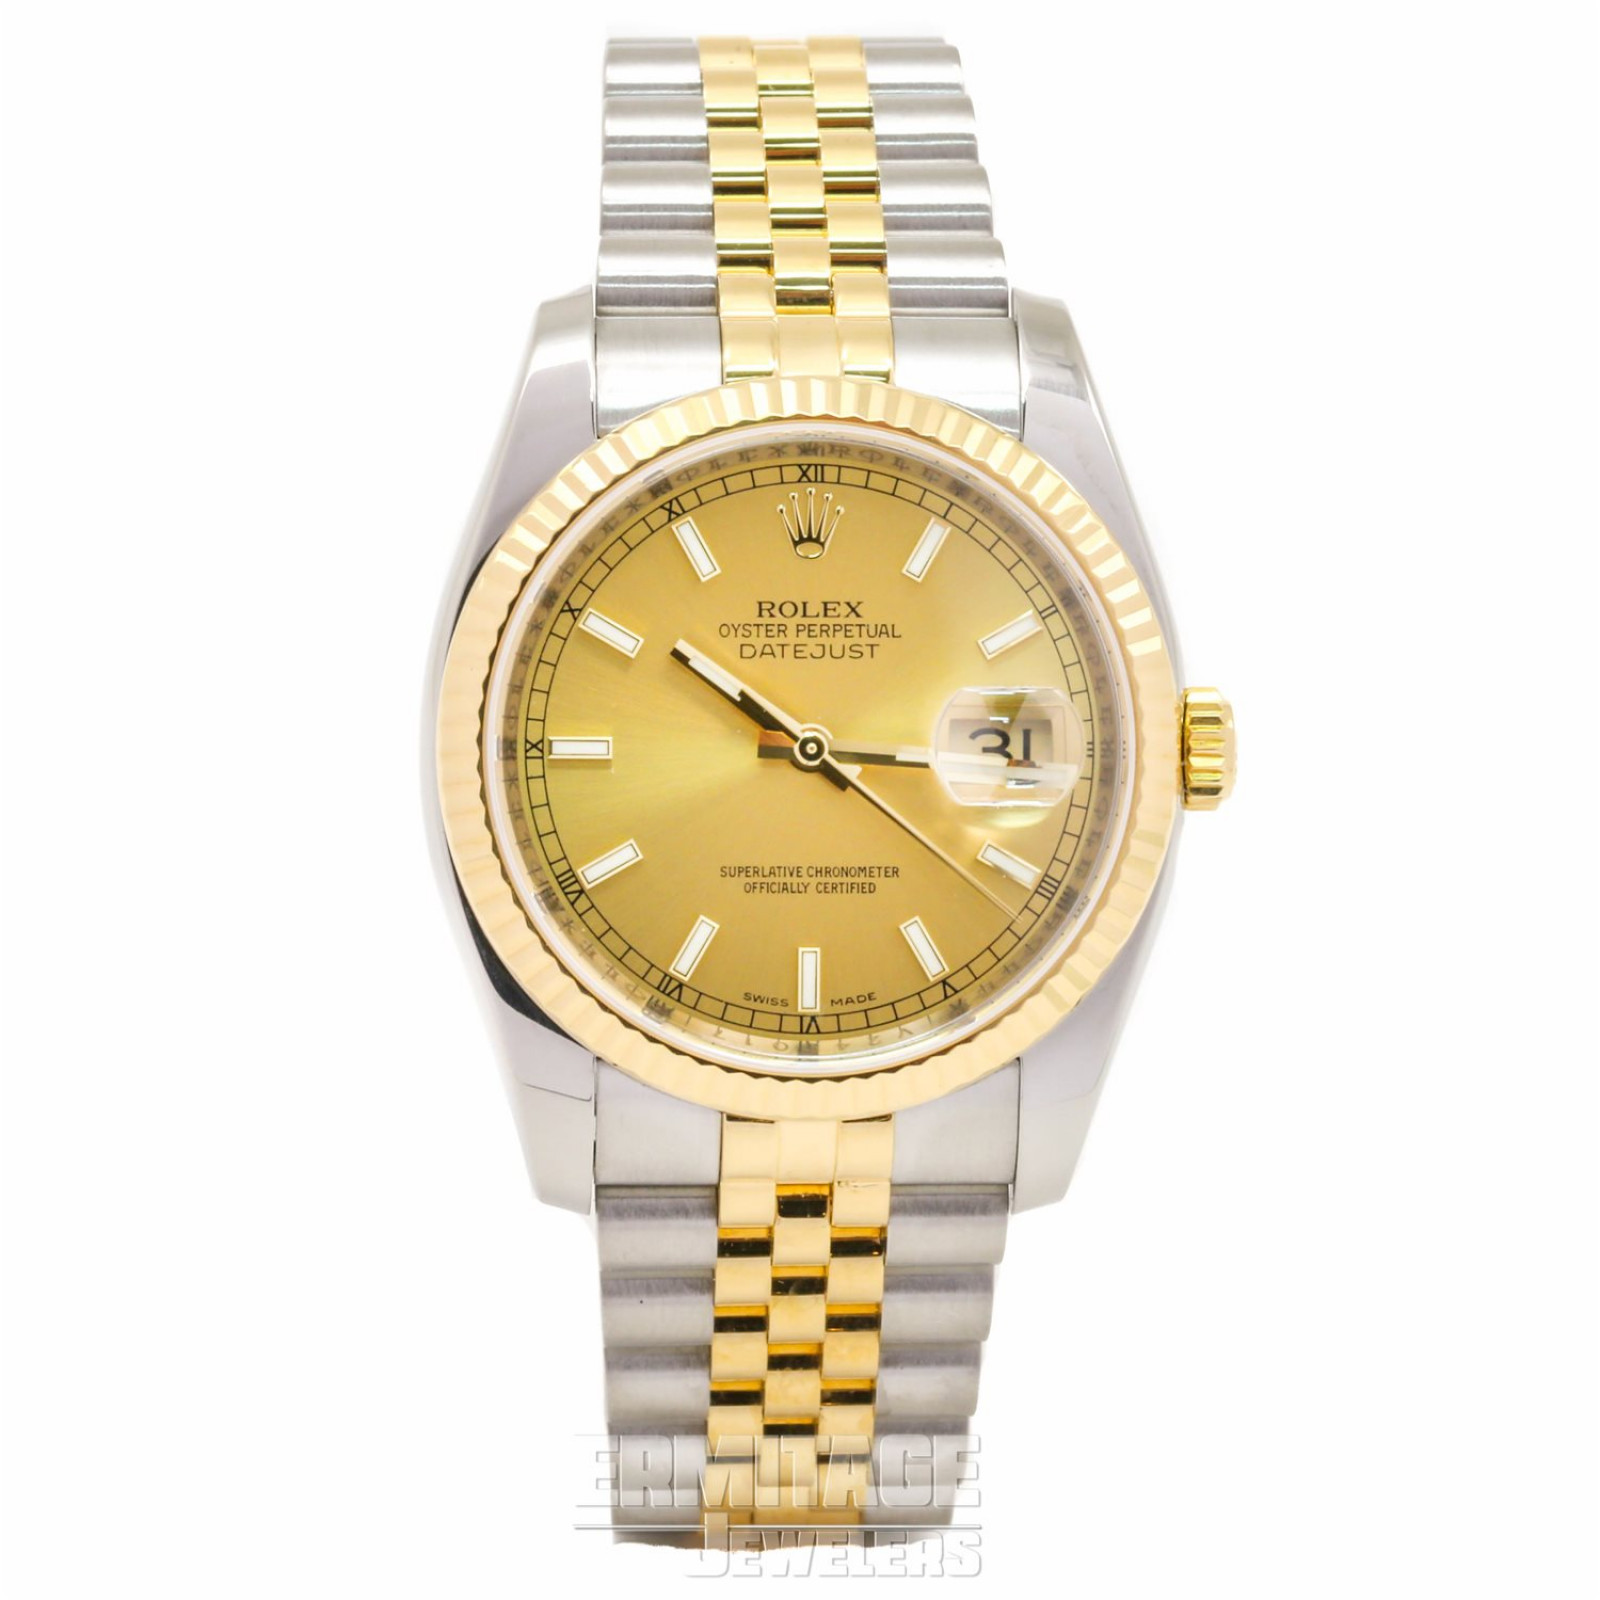 Pre-Owned Rolex Datejust 116233 with Champagne Dial